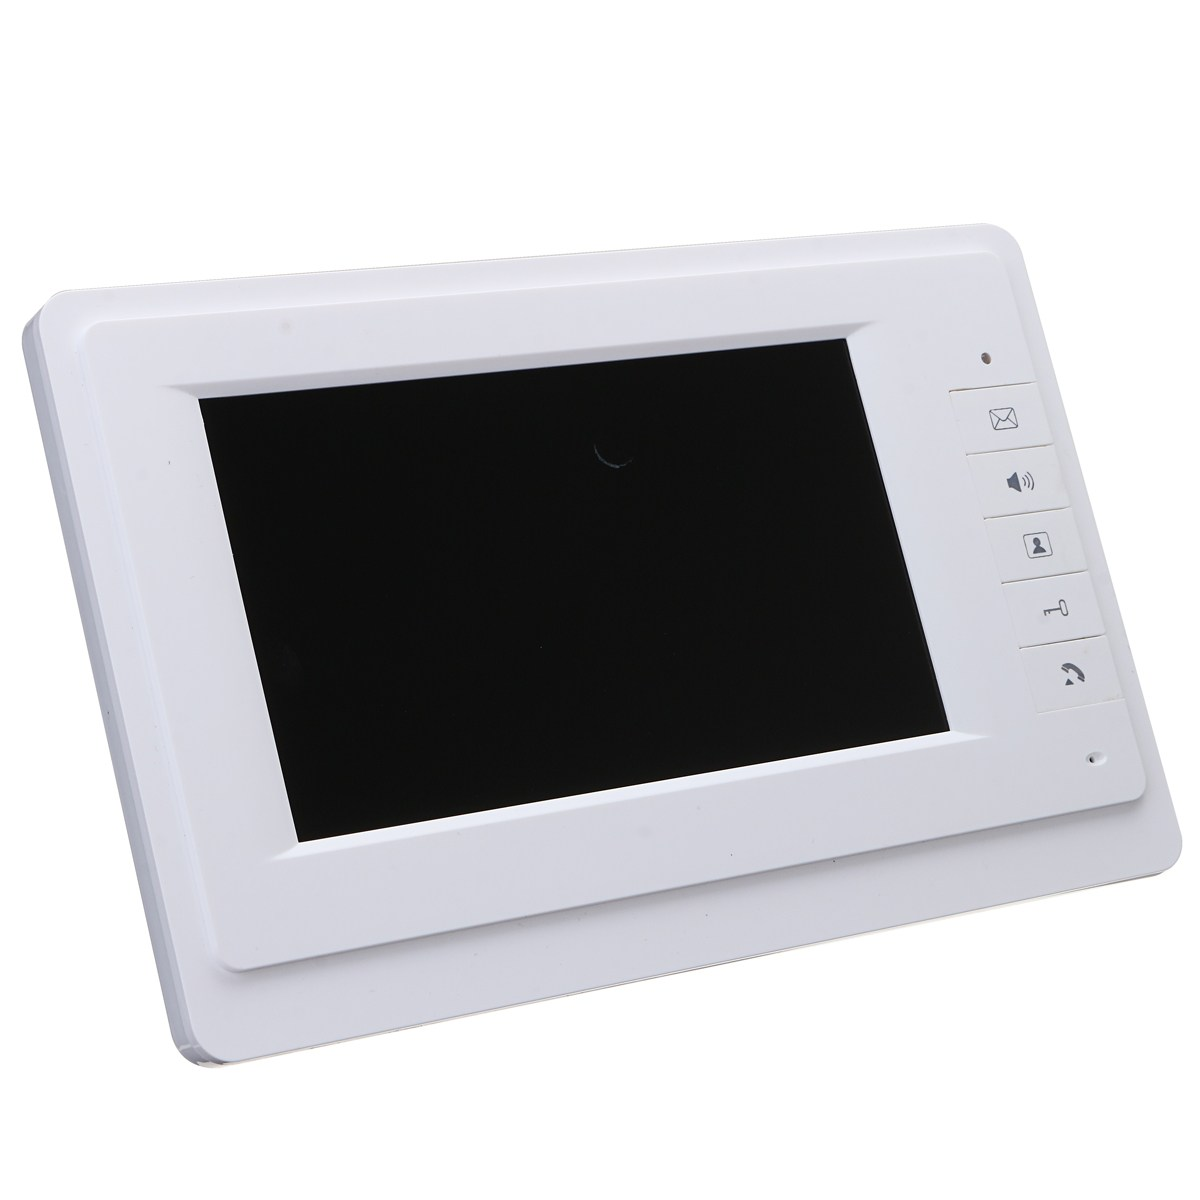 NEW 7'' Color TFT LCD 4-Line Wired Video Door Phone System Visual Intercom Doorbell Home Security hot 2017 new tft 7 inch button color lcd video door phone doorbell intercom system silver visual intercom drop shipping mar9